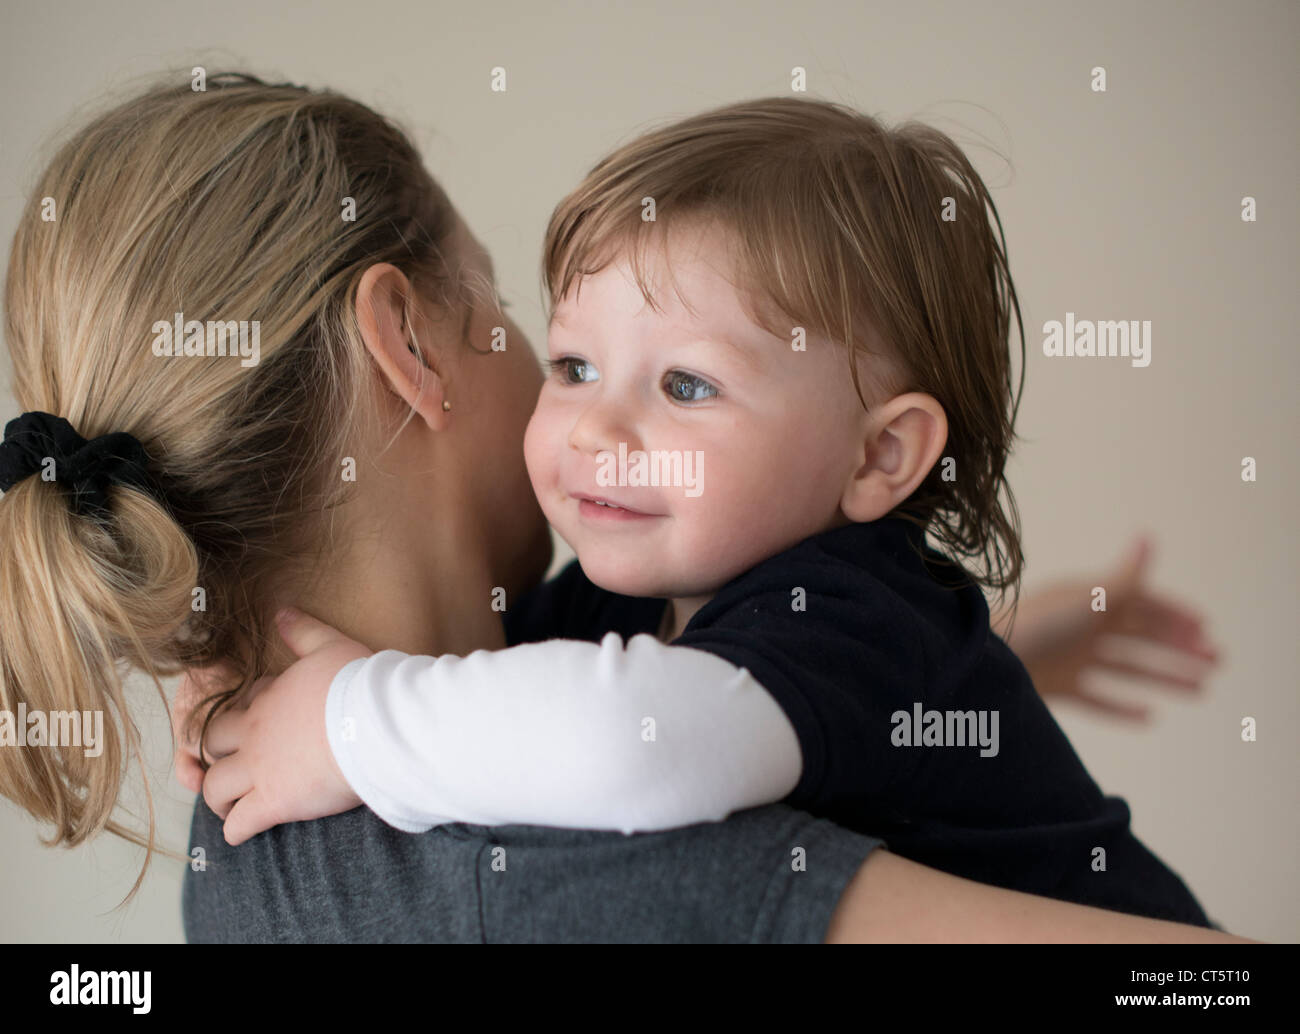 In mother's arms,mother and child - Stock Image